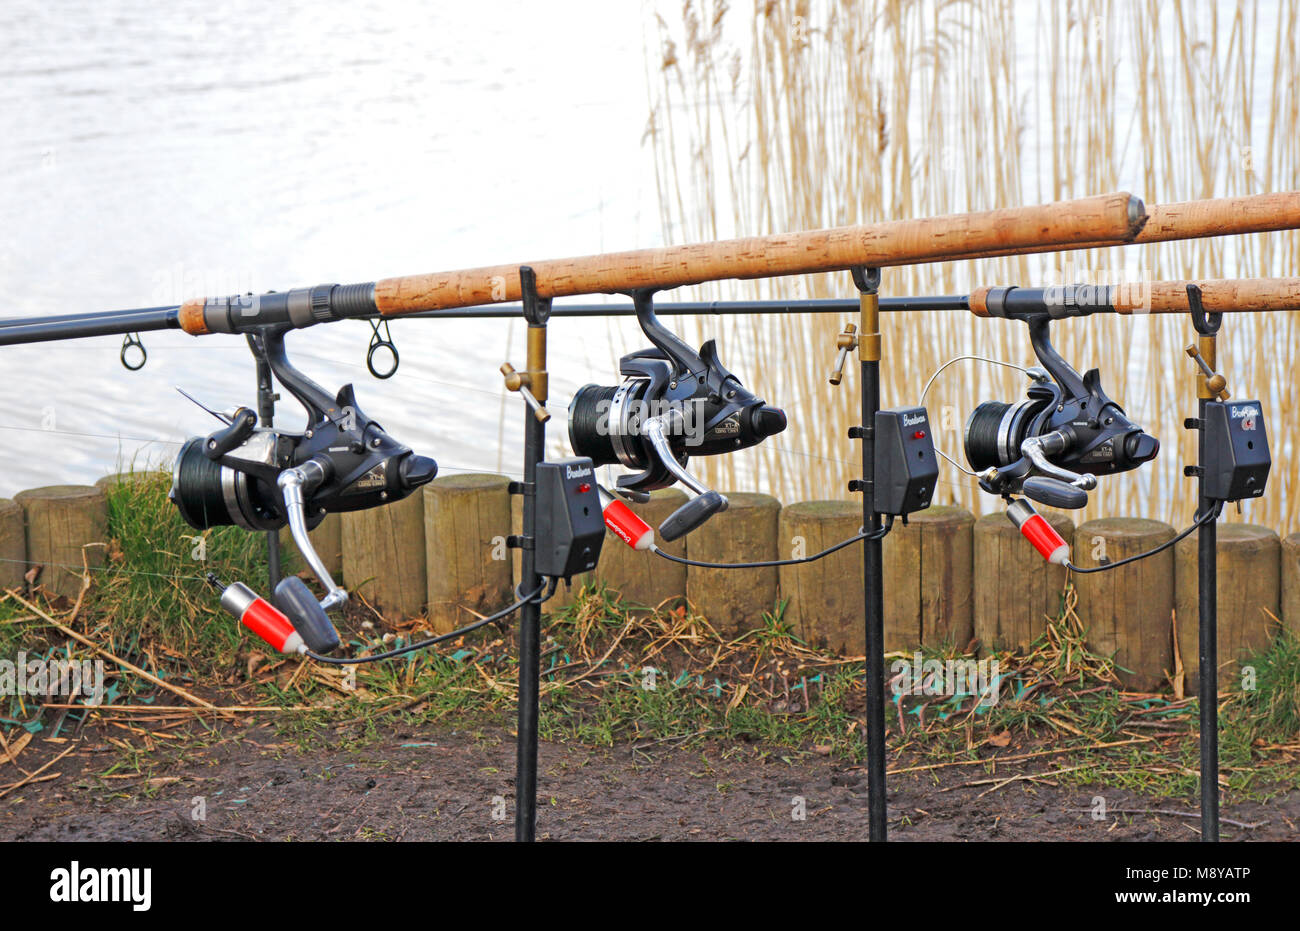 Three fishing rods with reels and bite indicators on the Norfolk Broads at Horsey, Norfolk, England, United Kingdom, - Stock Image